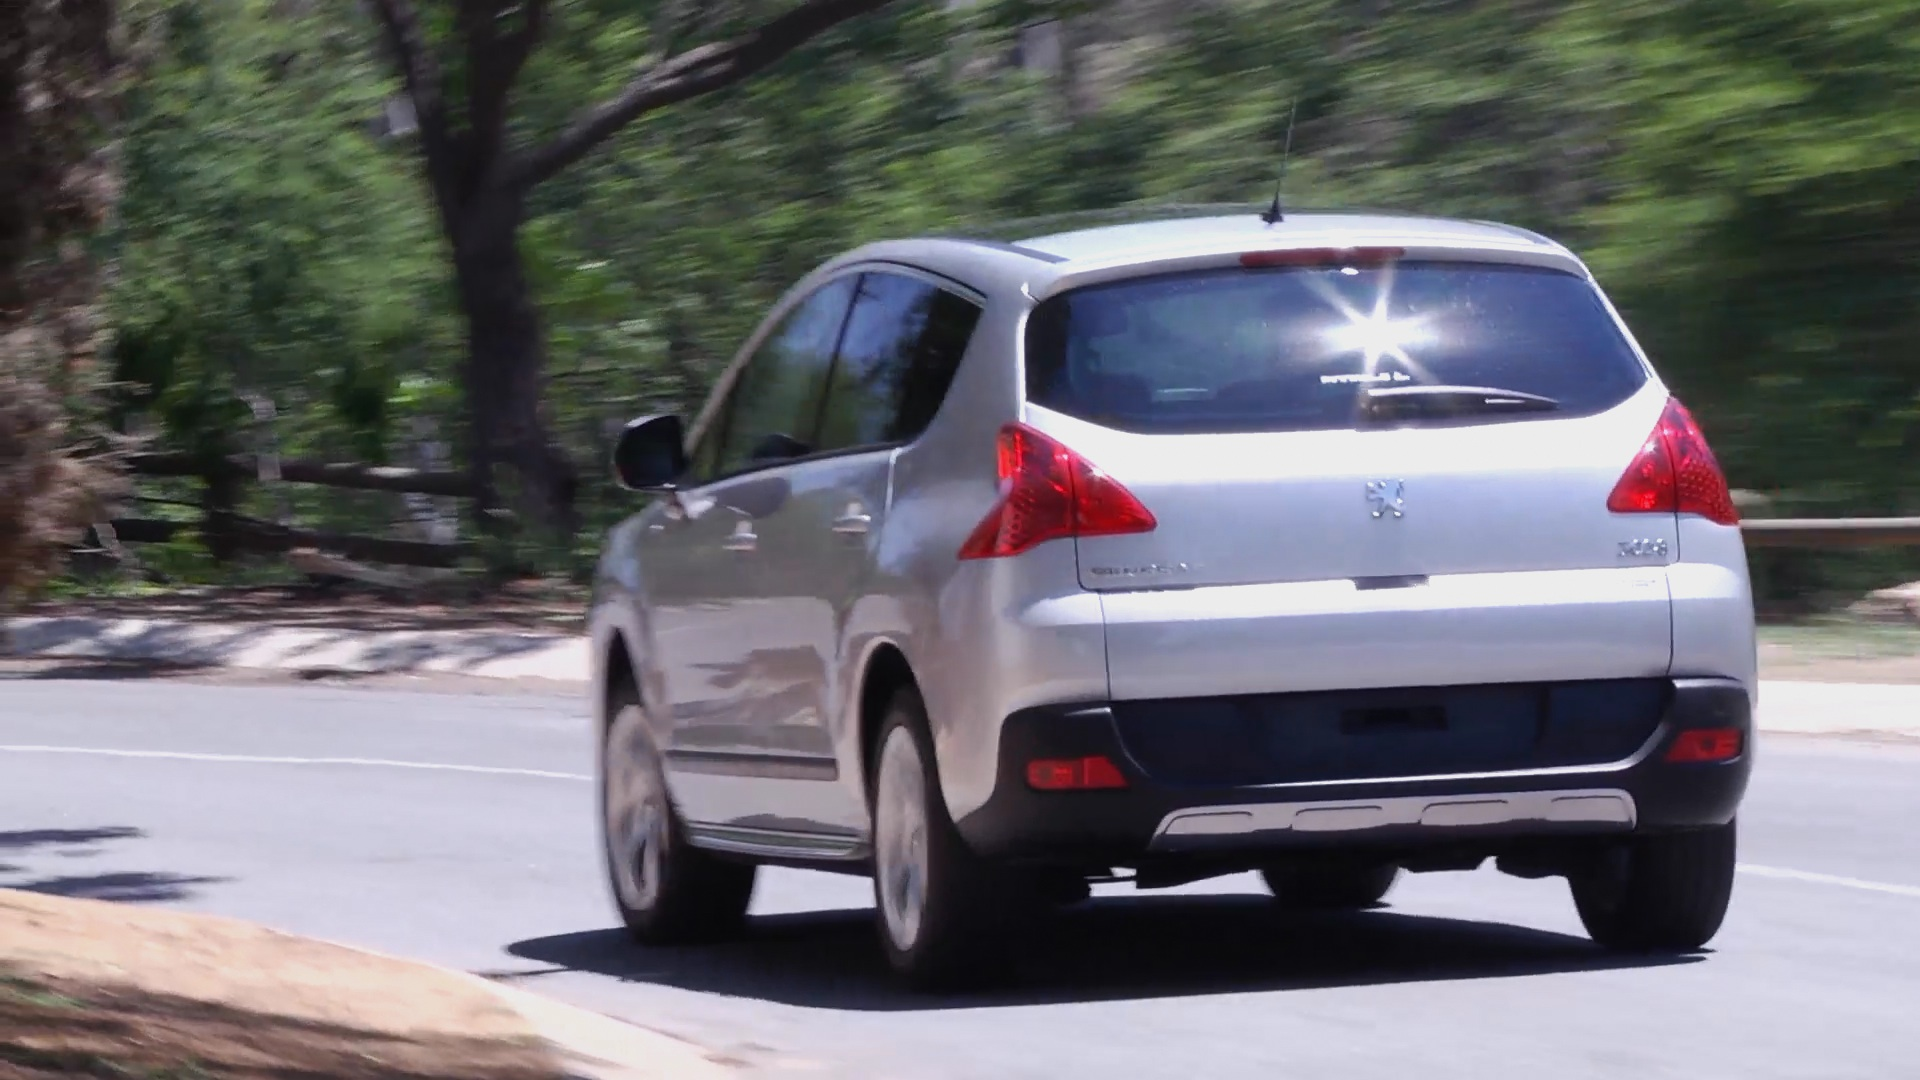 Peugeot 3008 2.0 HDI Executive (2012): Used Car Review – Surf4cars